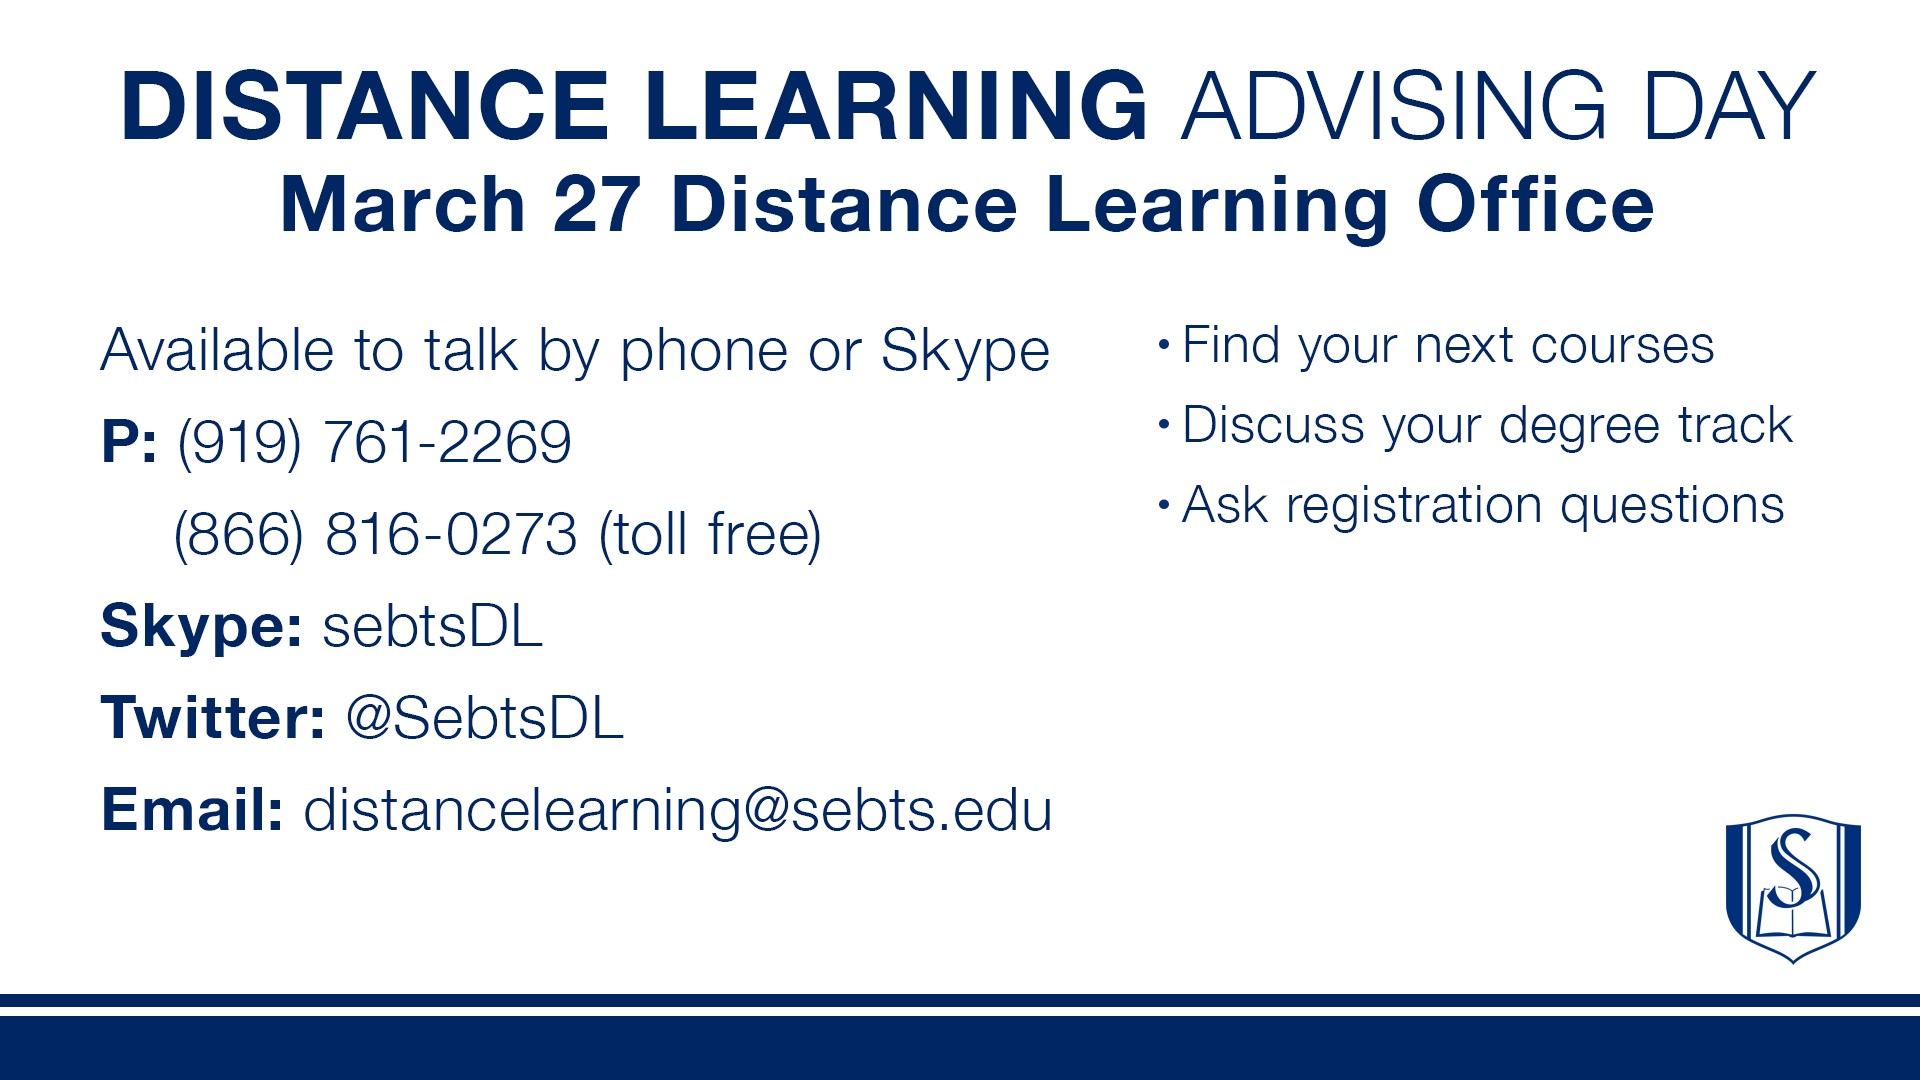 Distance Learning Graduate Advising March 27 Around Southeastern